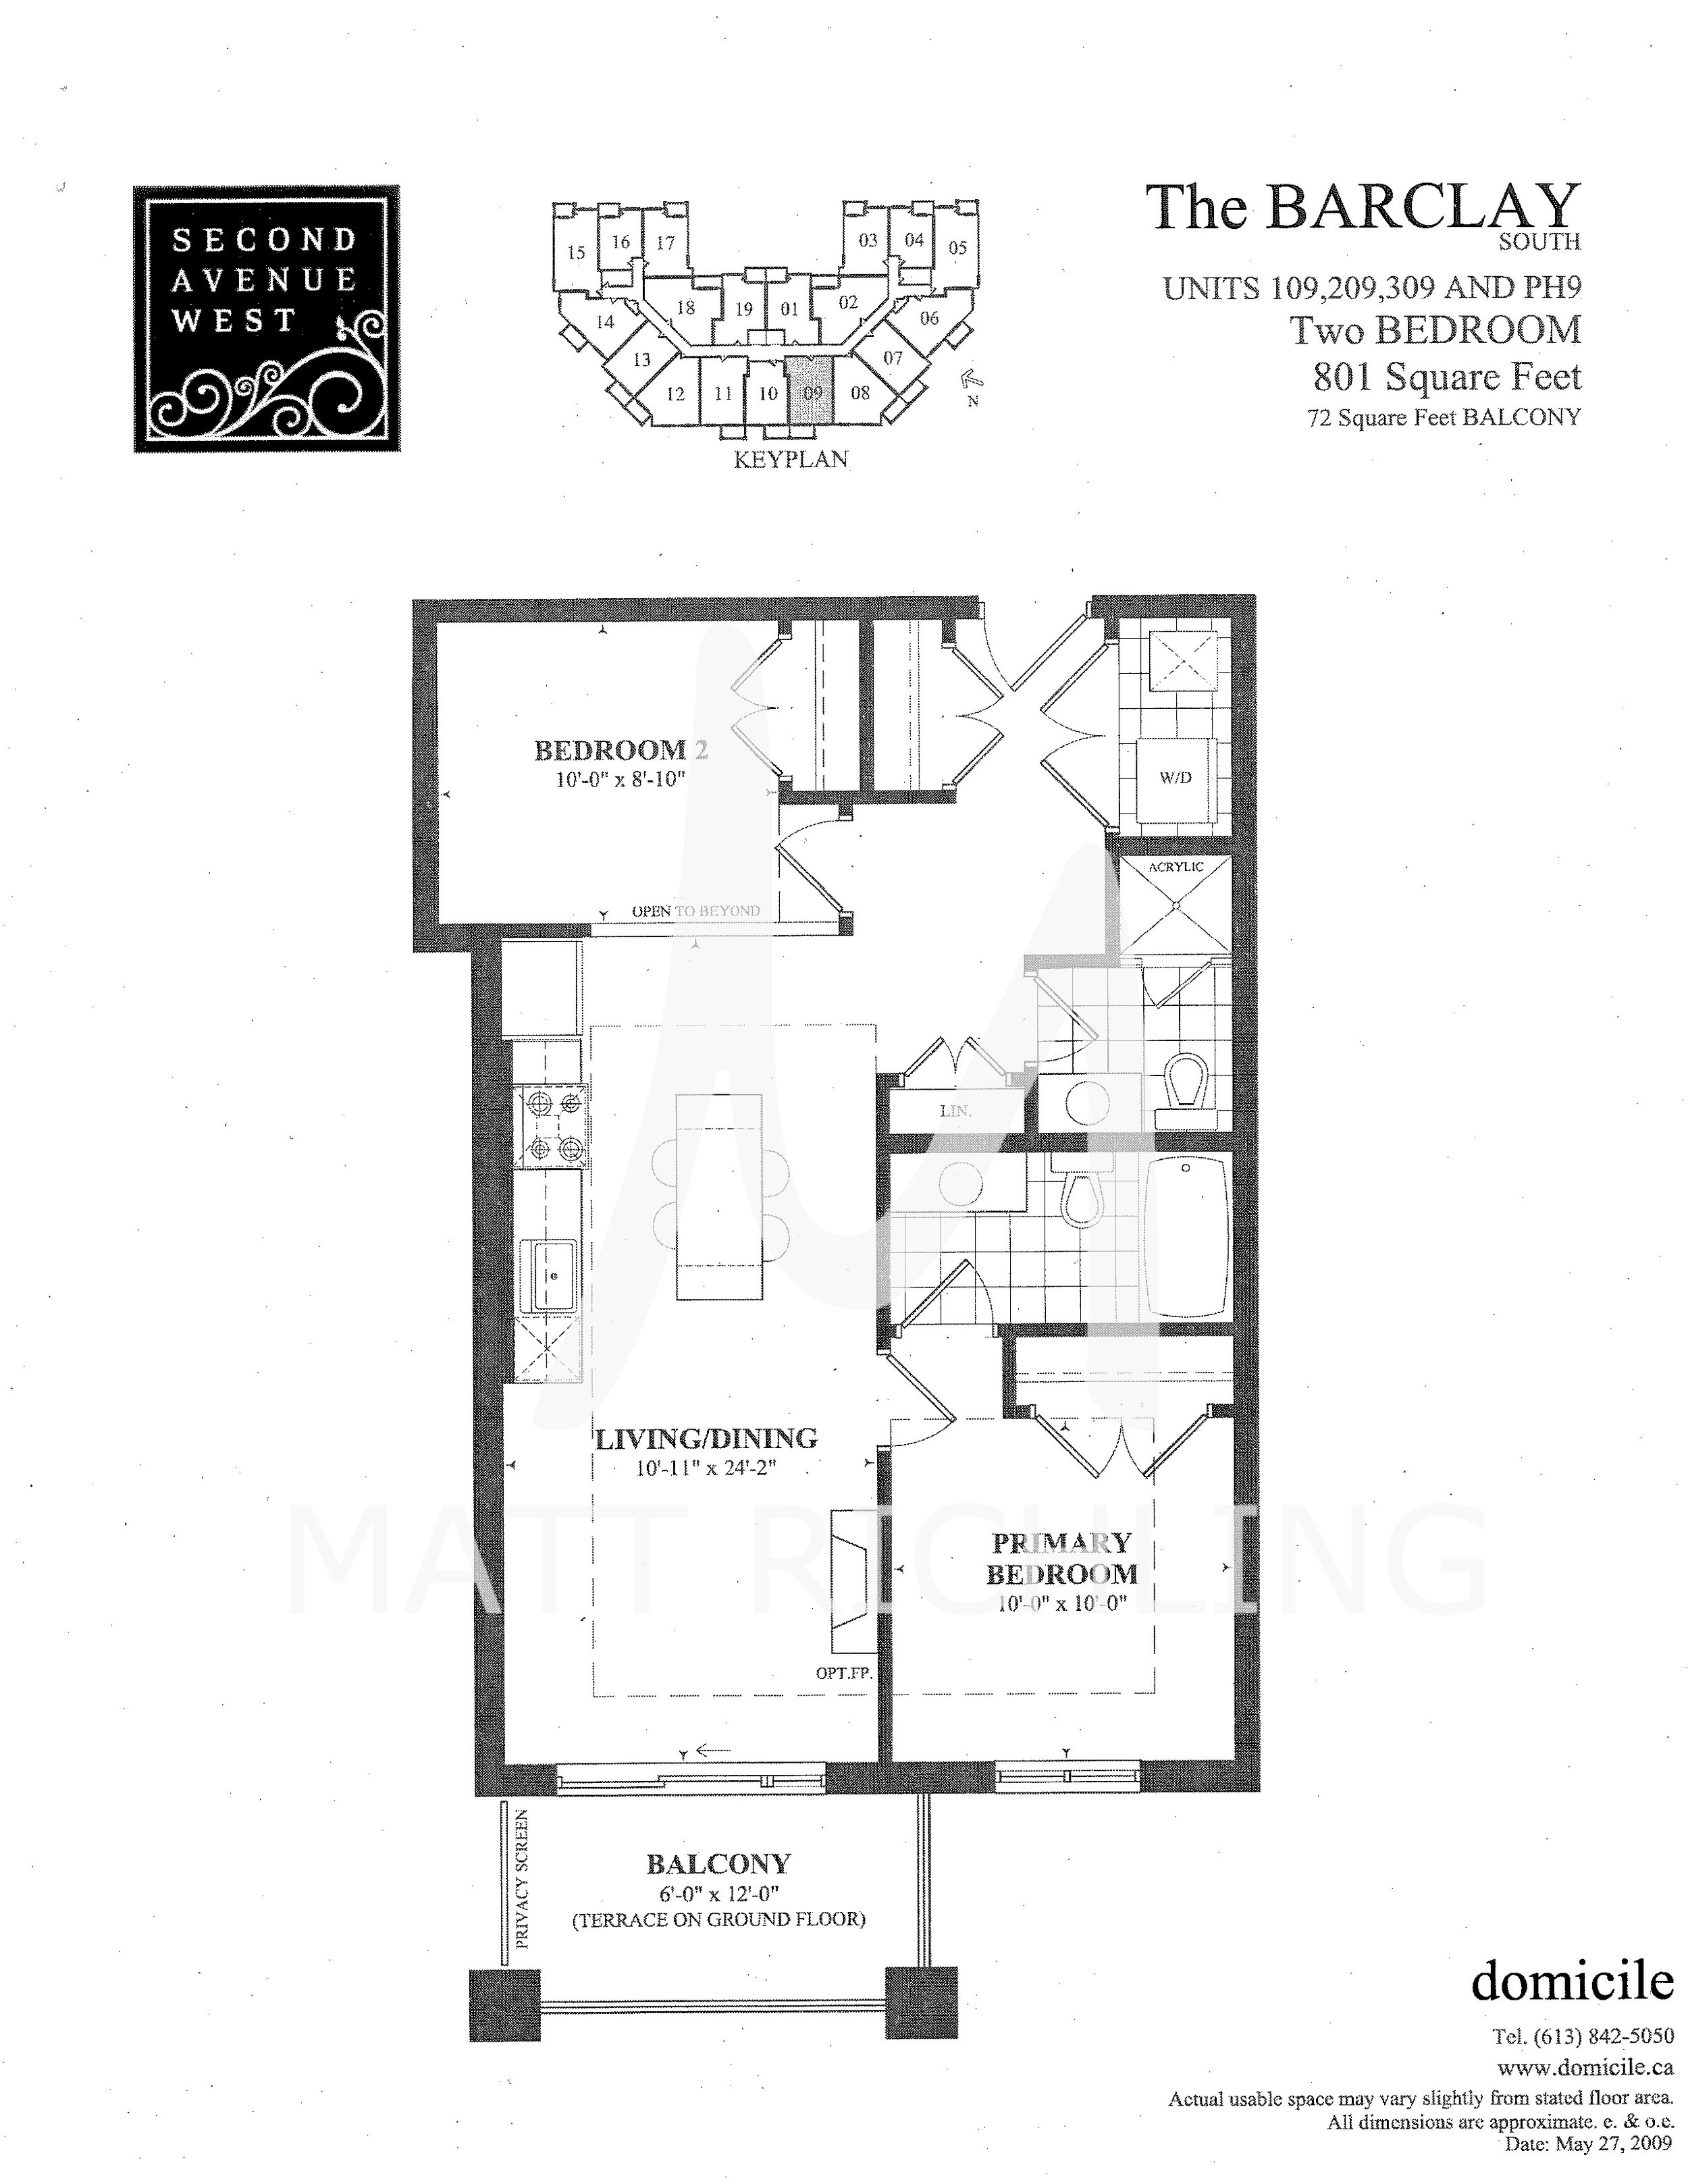 The-Barclay---2-Bed---109,209,309,PH9.jpg